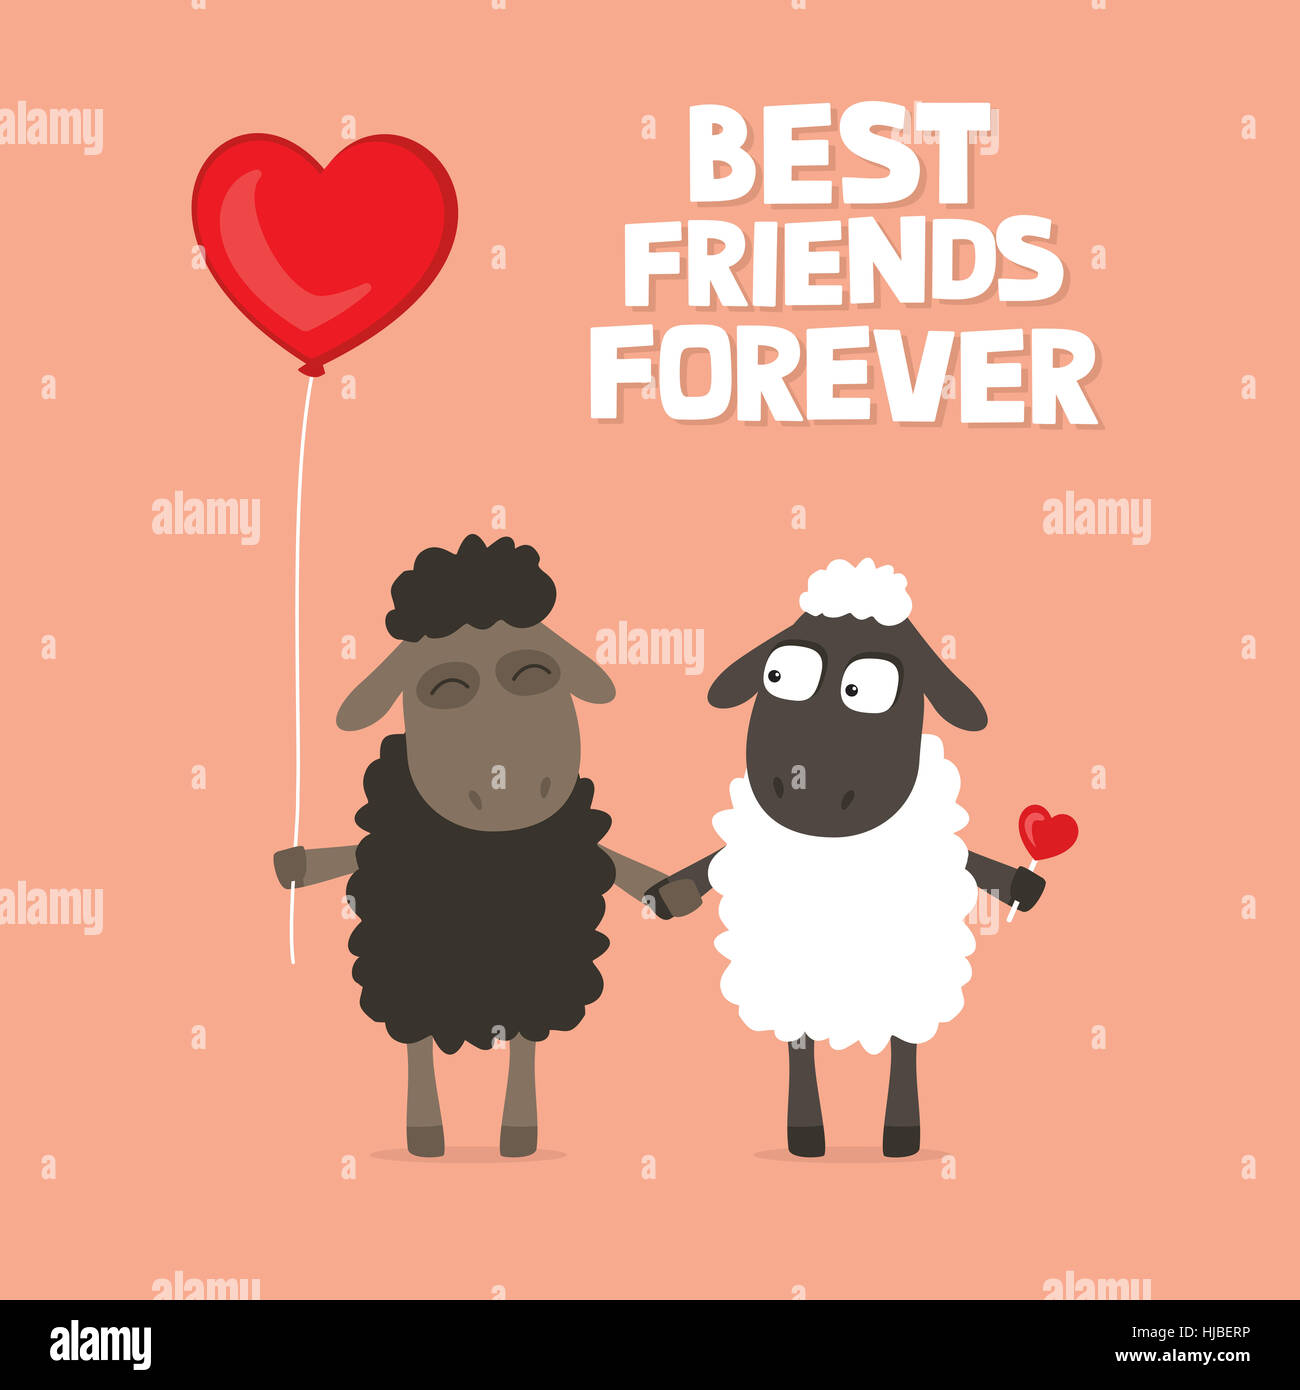 valentines day card with cute cartoon sheep holding hands with text saying best friends forever on a pink background with heart shaped balloon